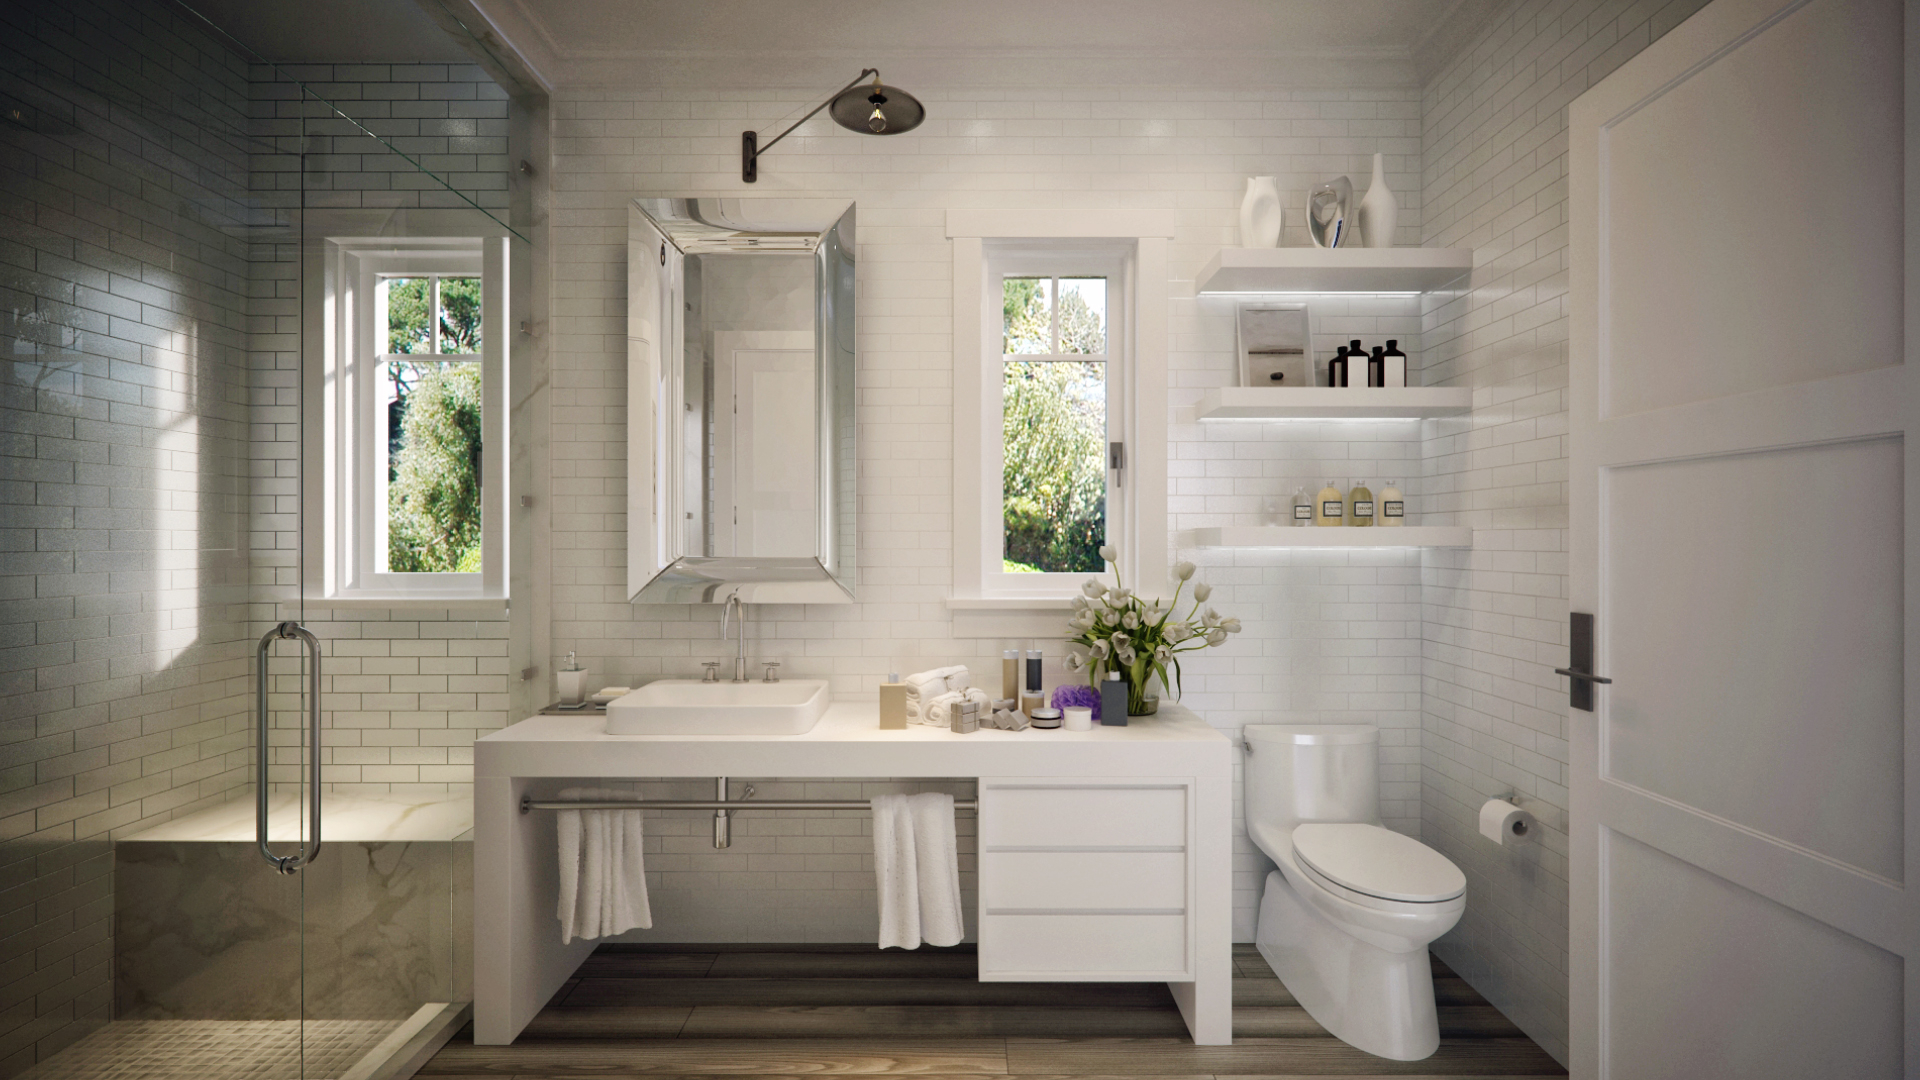 Cape cod attic bathroom attic ideas for Cape cod bathroom design